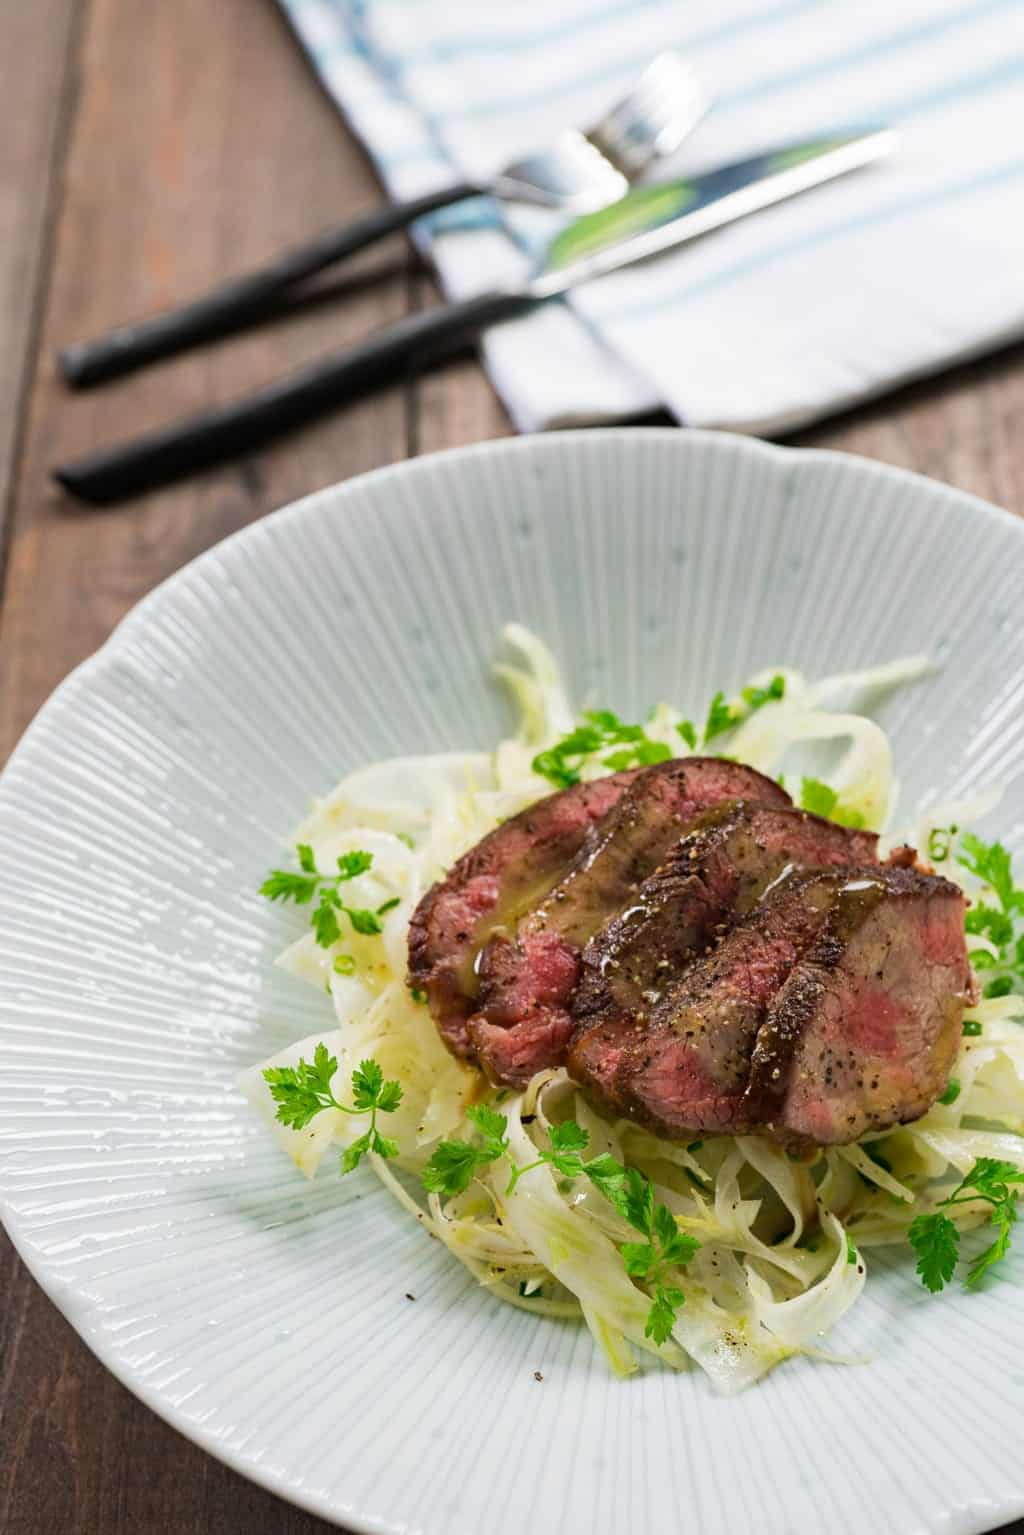 This shaved fennel salad with warm slices of seared fillet steak and a tangy yuzu dressing is a quick and delightfully delicious light summer meal.